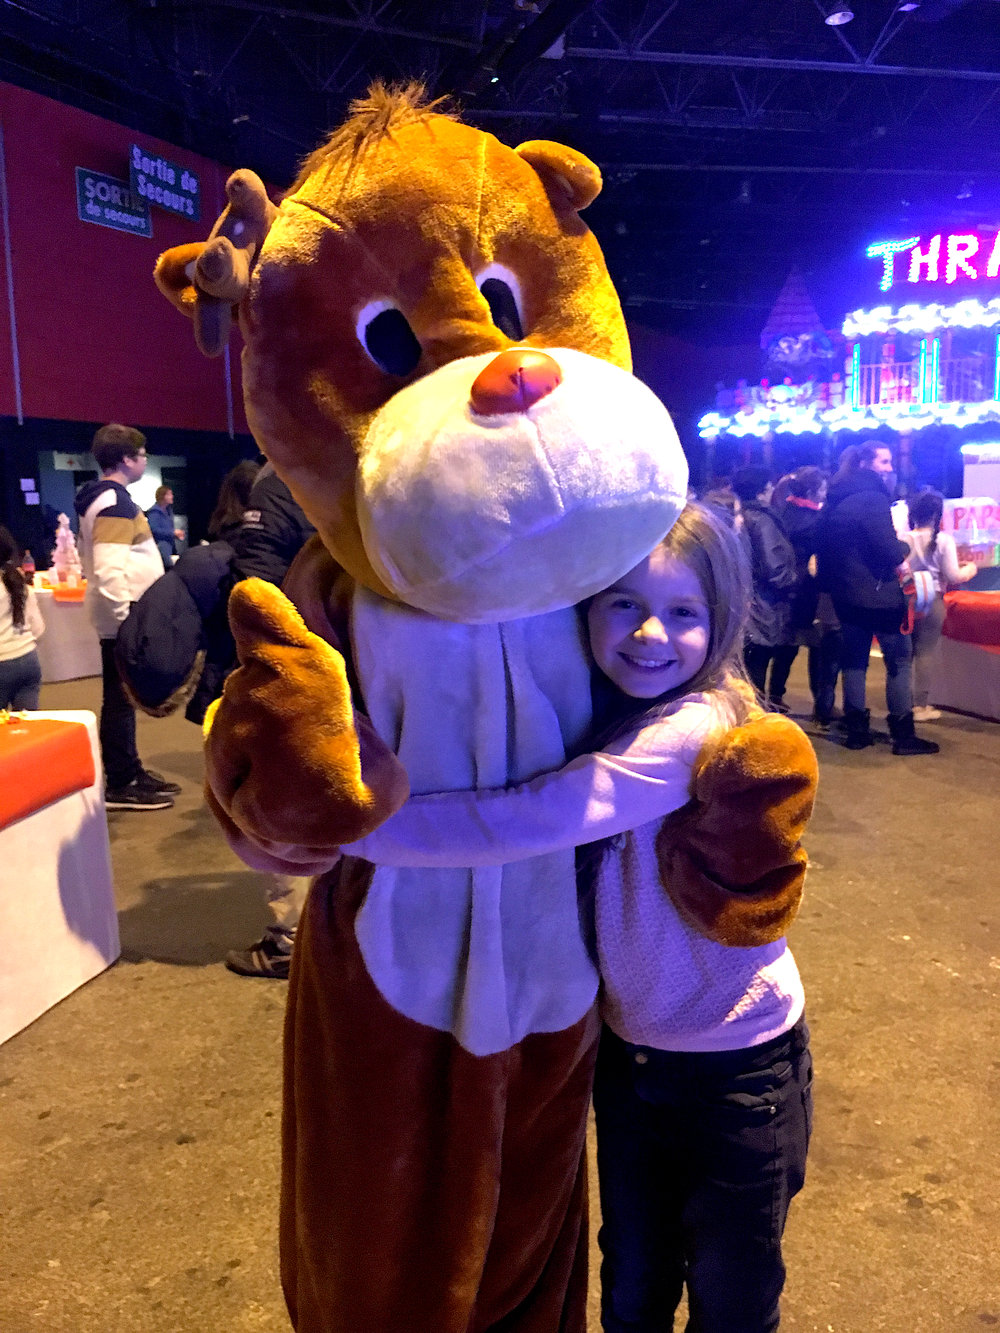 Elma, the young girl from CAES, poses with a costumed worker at the La Fête de Foraine, a fun-fair coordinated by local non-profit organizations. Photo courtesy:  Amy Nakamura .